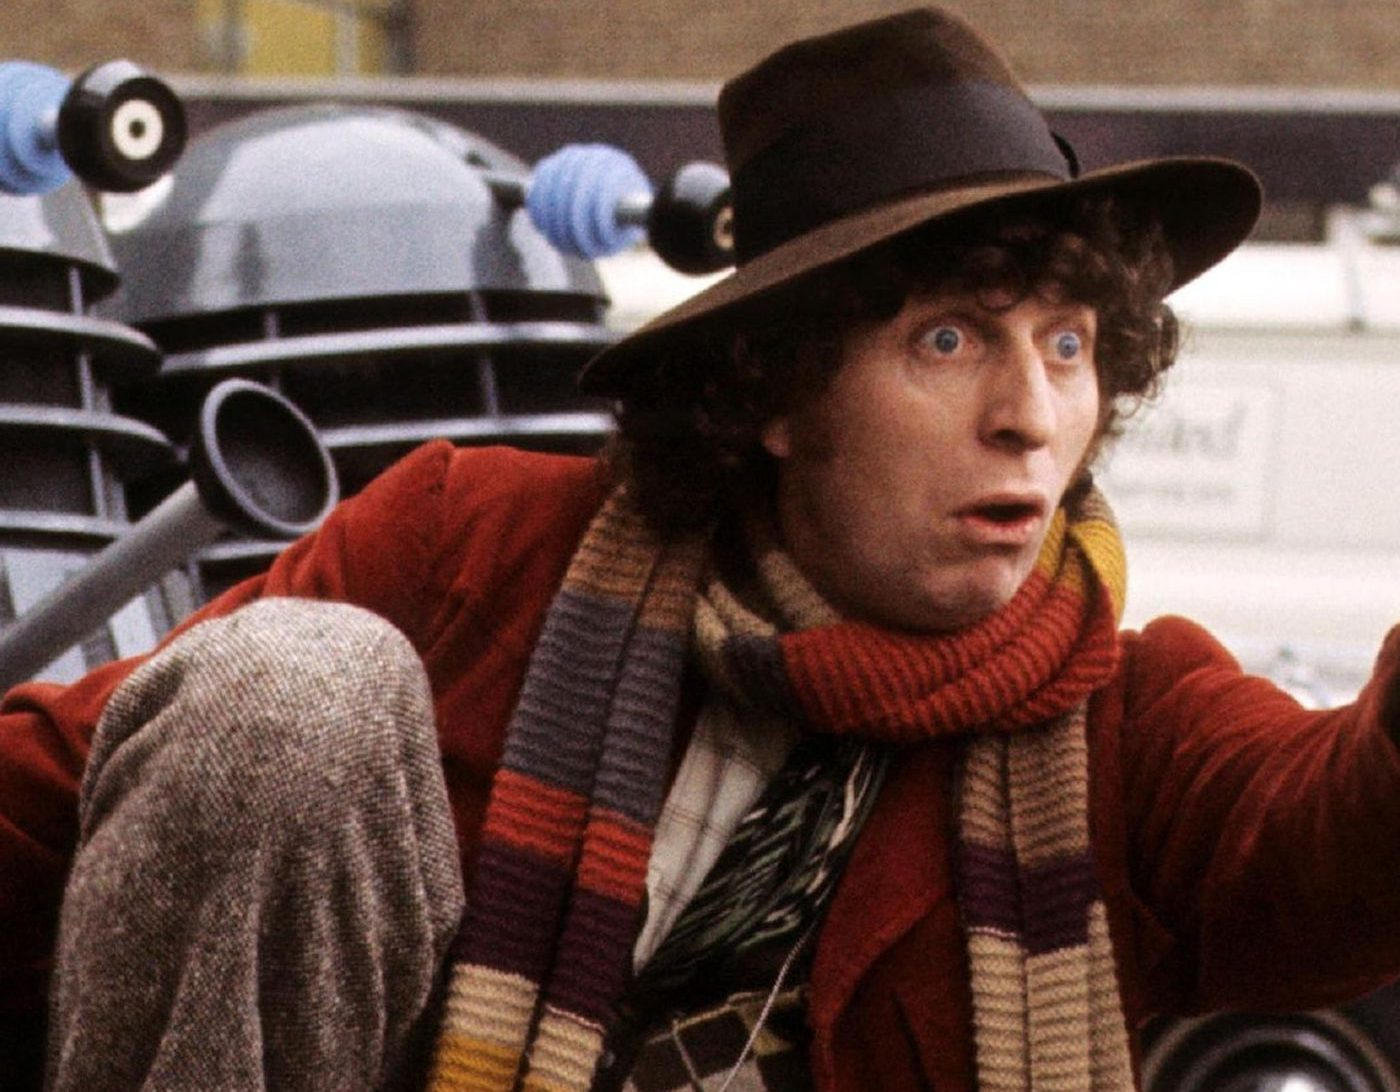 dalek fourth doctor tom baker who desktop 1920x1080 hd wallpaper 1198786 e1627471735121 Blake's 7: 10 Things You Never Knew About The Classic Sci-Fi TV Show